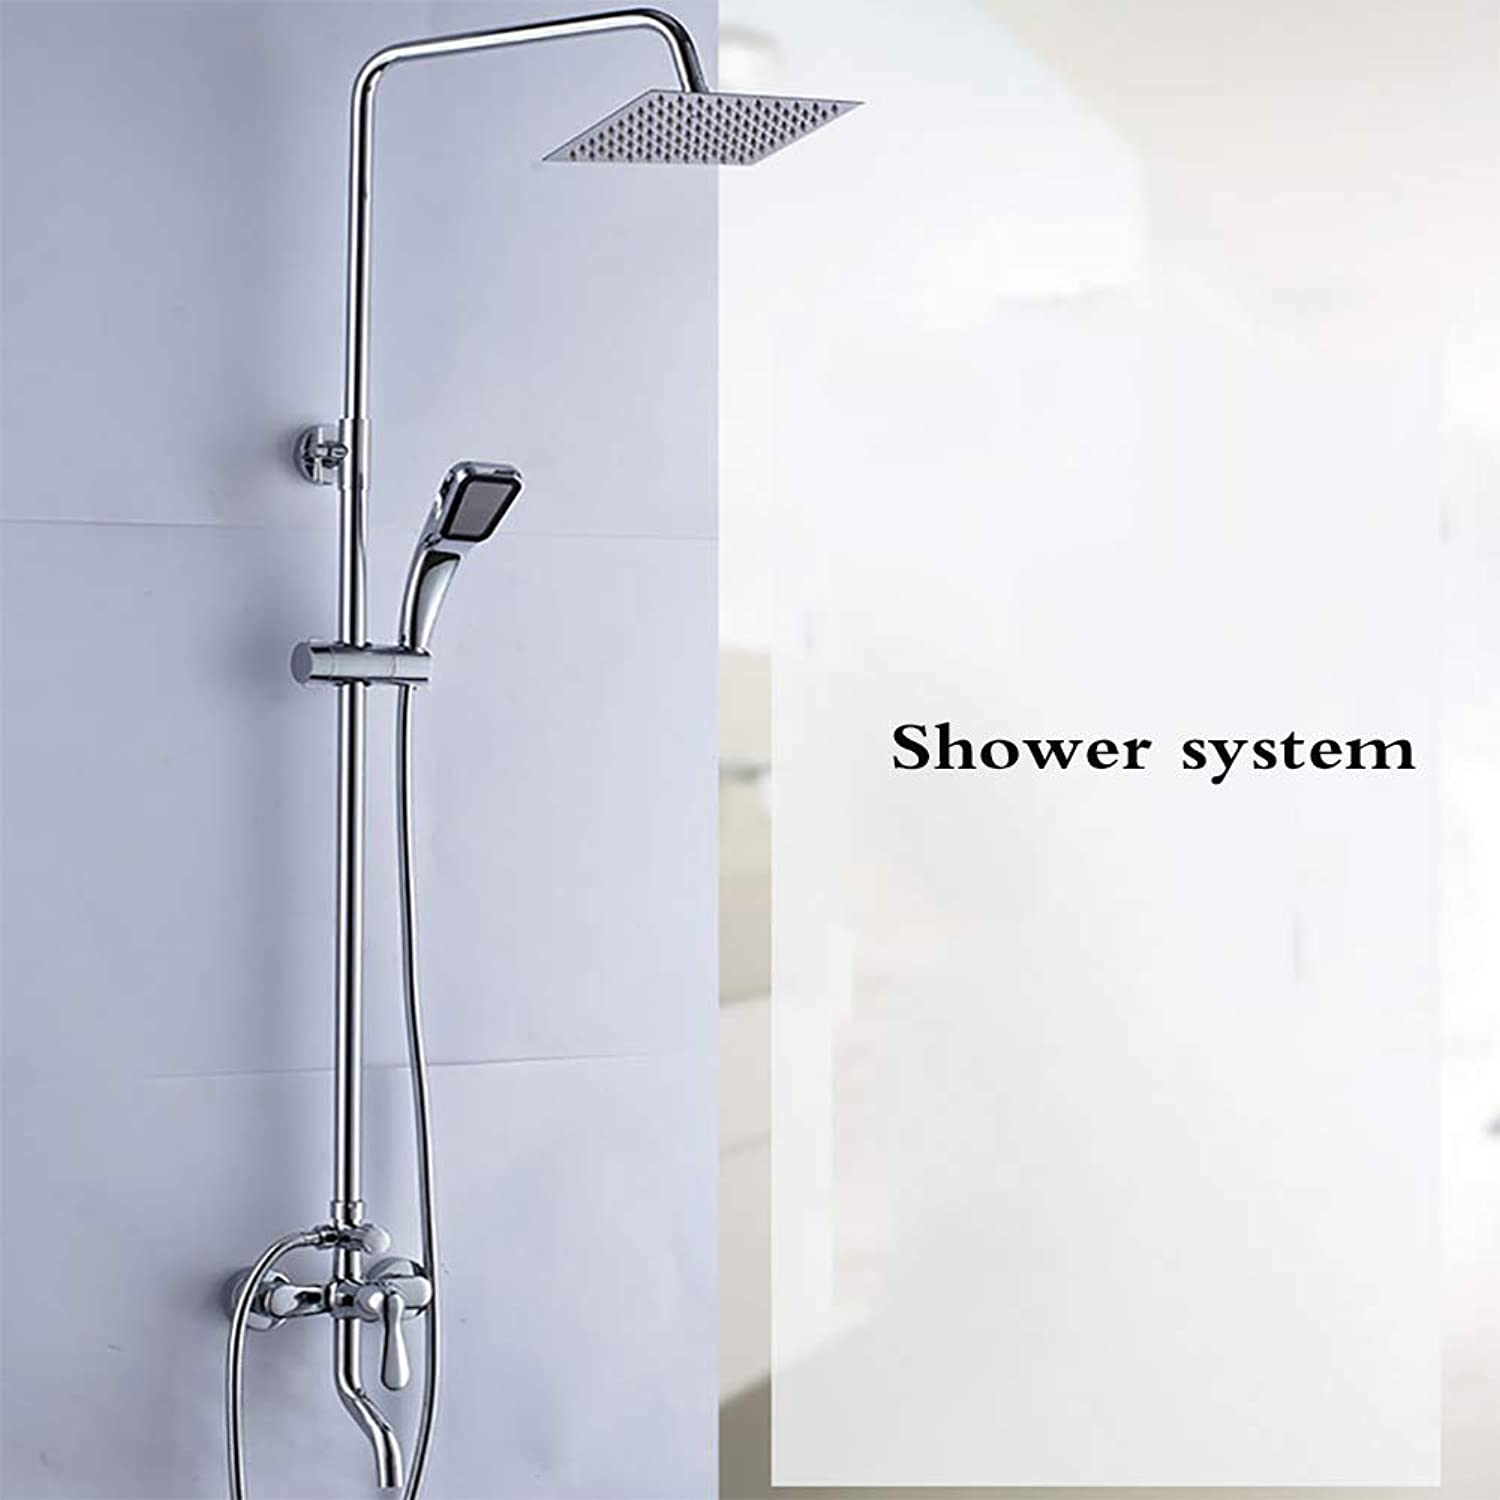 Shower System - Bathroom Thermostatic Mixer Shower Valve With Square Rain Shower Shower Head And Hand Held.